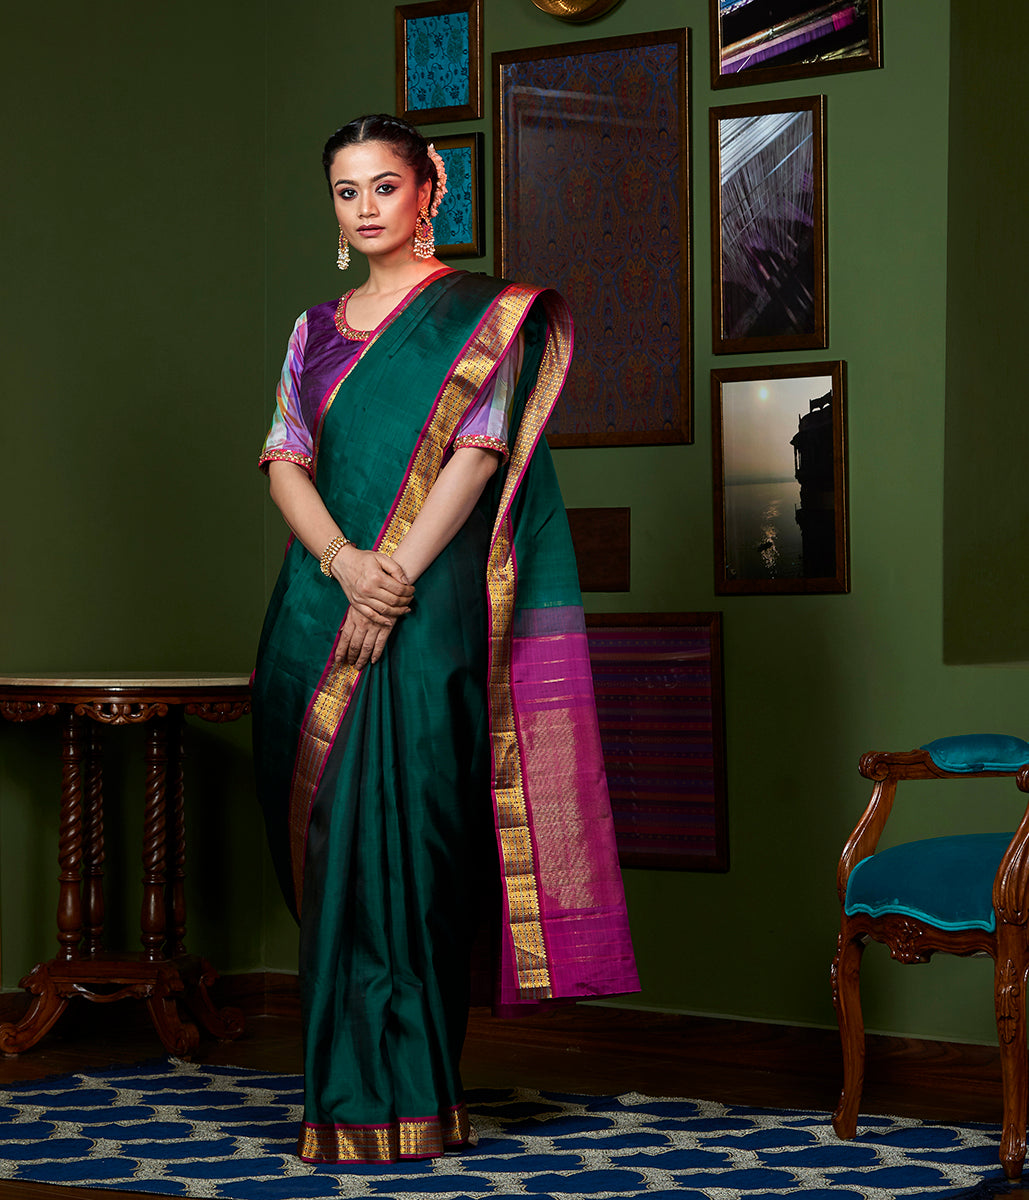 Handwoven Emerald Green and Pink Kanjivaram Silk Saree with Gold Zari Border